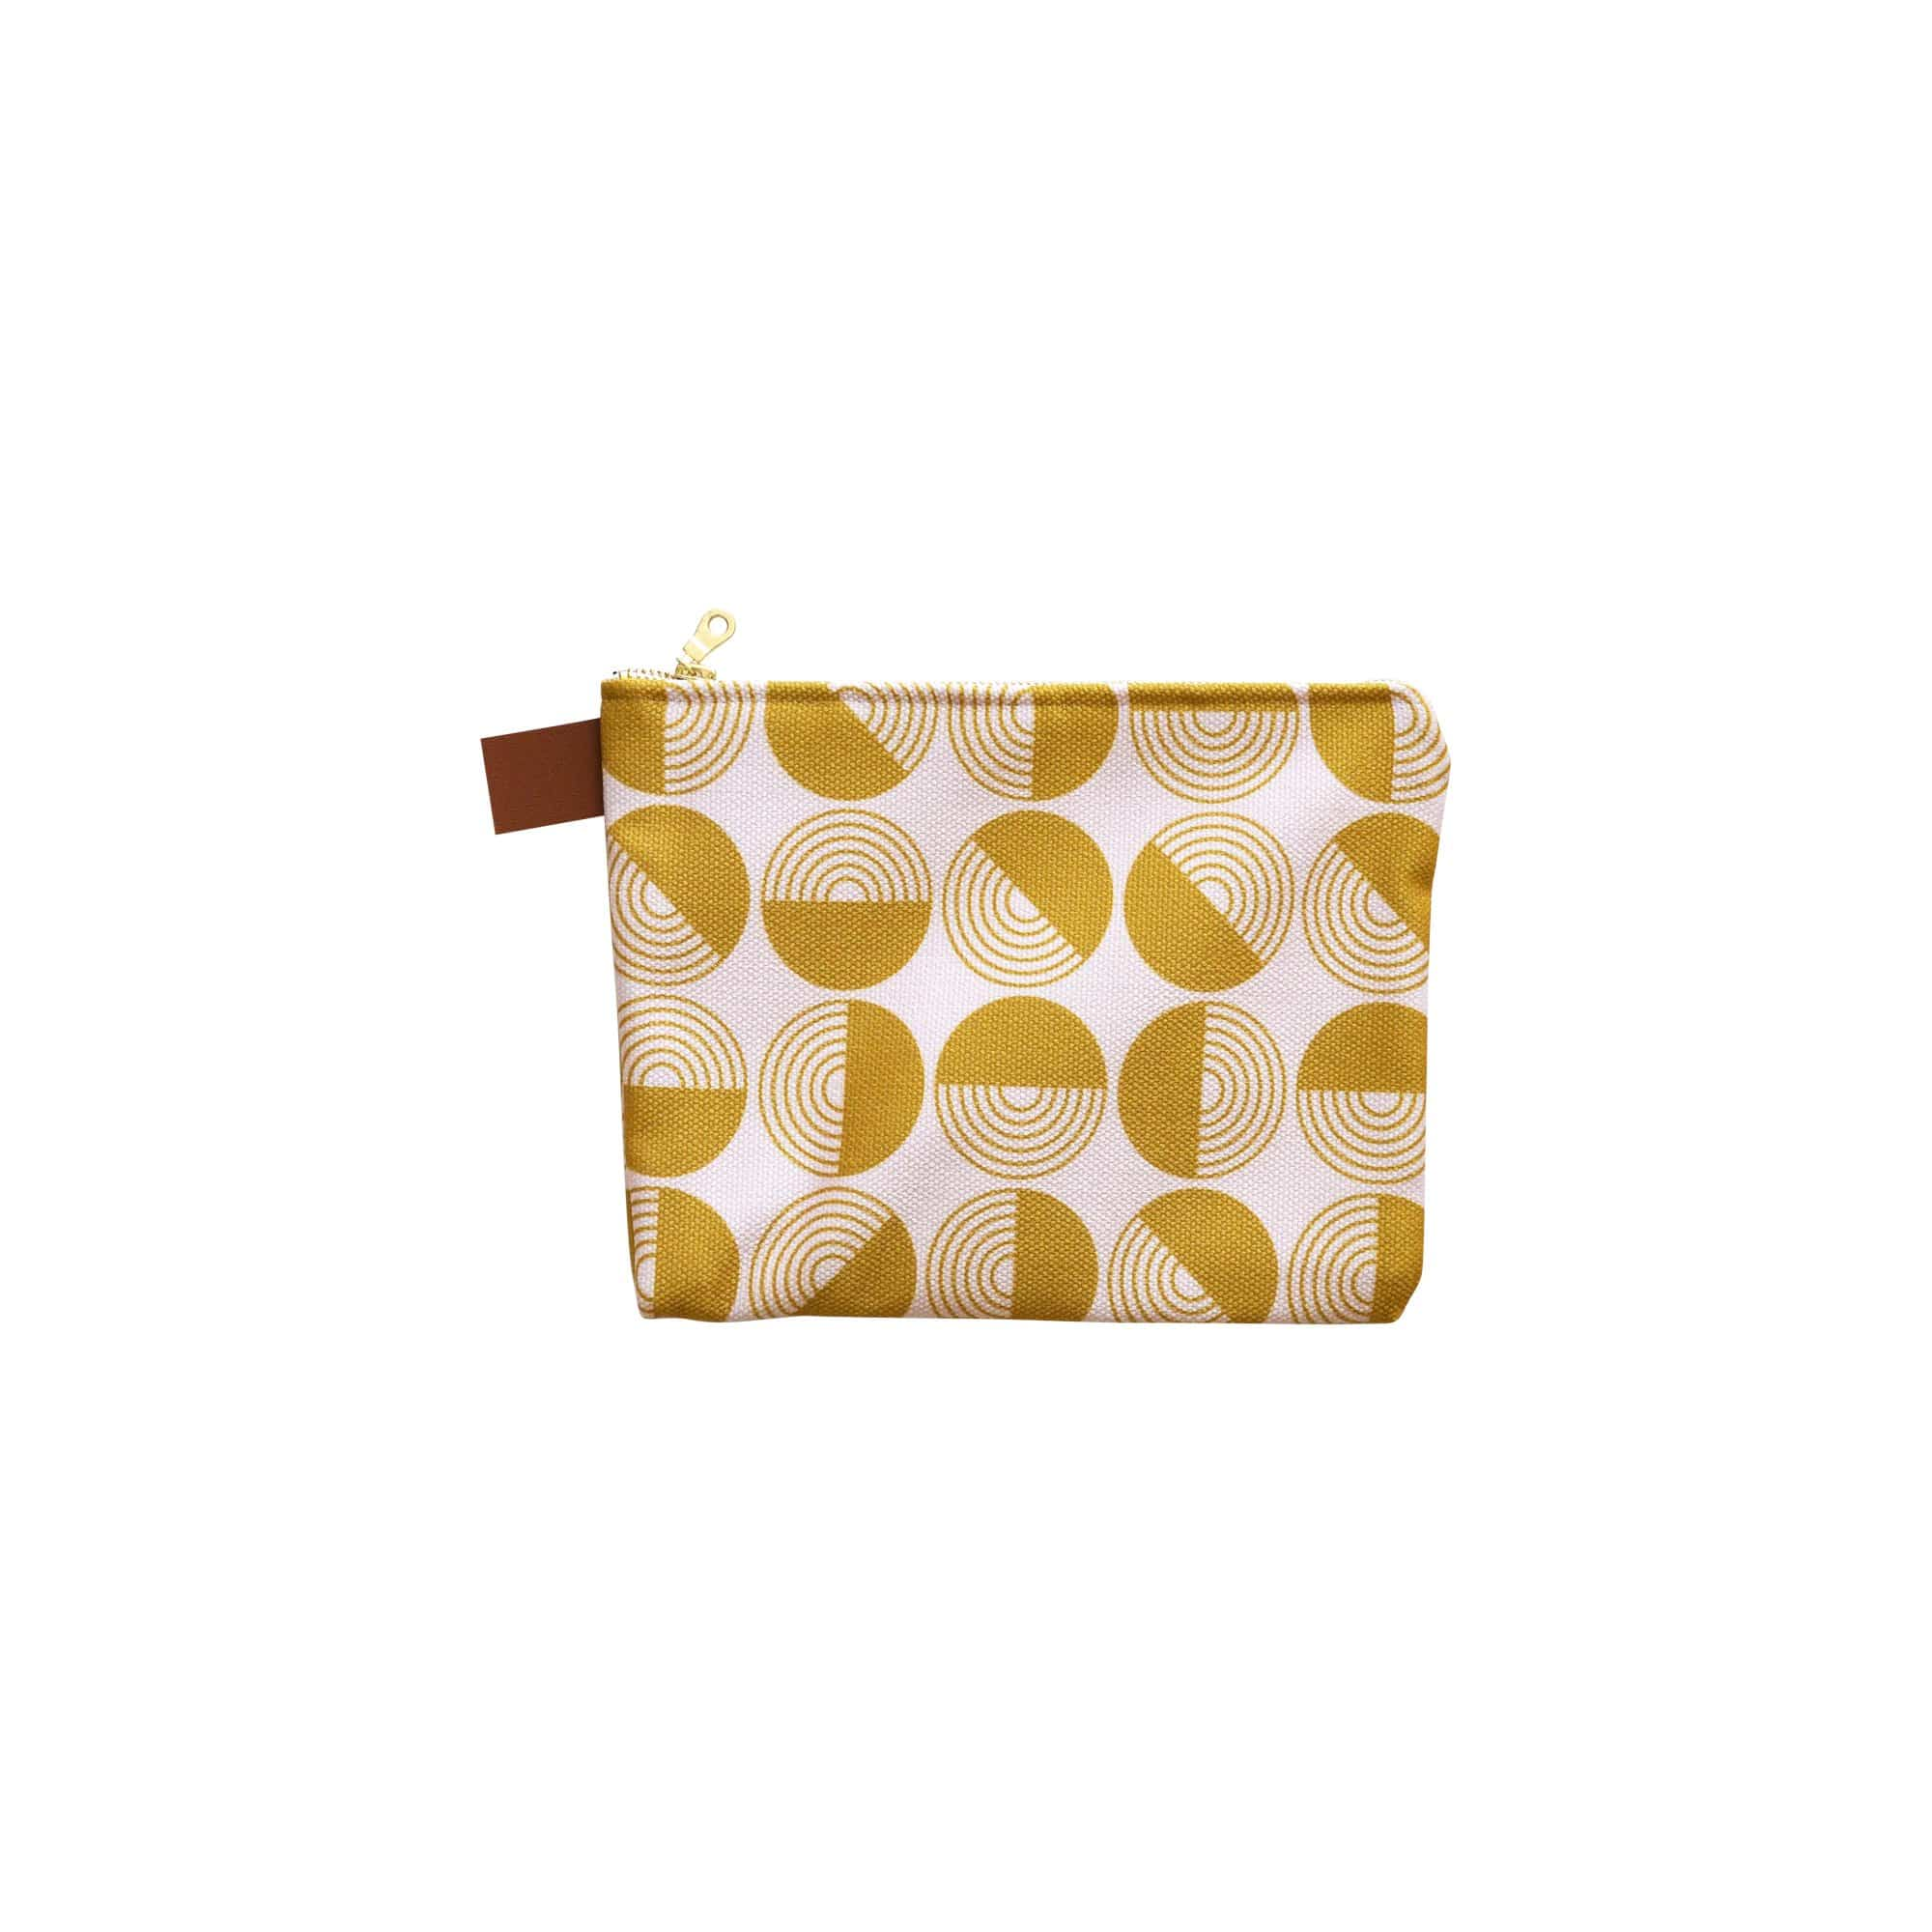 Swell Made Co. Handbags + Clutches Sunrise Canvas Pouch